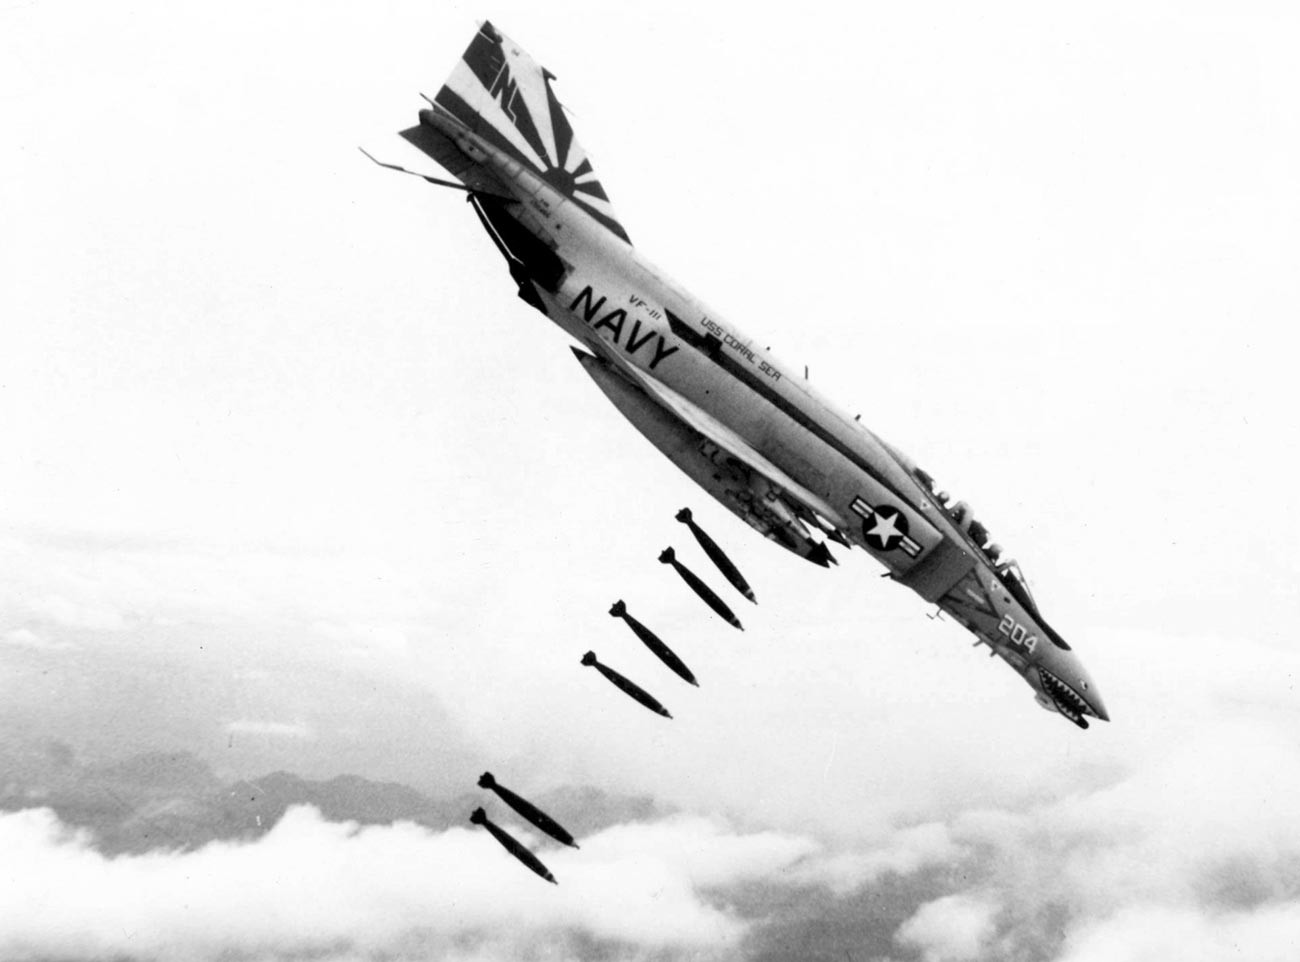 An F-4B Phantom II of Fighter Squadron VF-111 Sundowners drops 227 kg Mk 82 bombs over Vietnam during 1971.